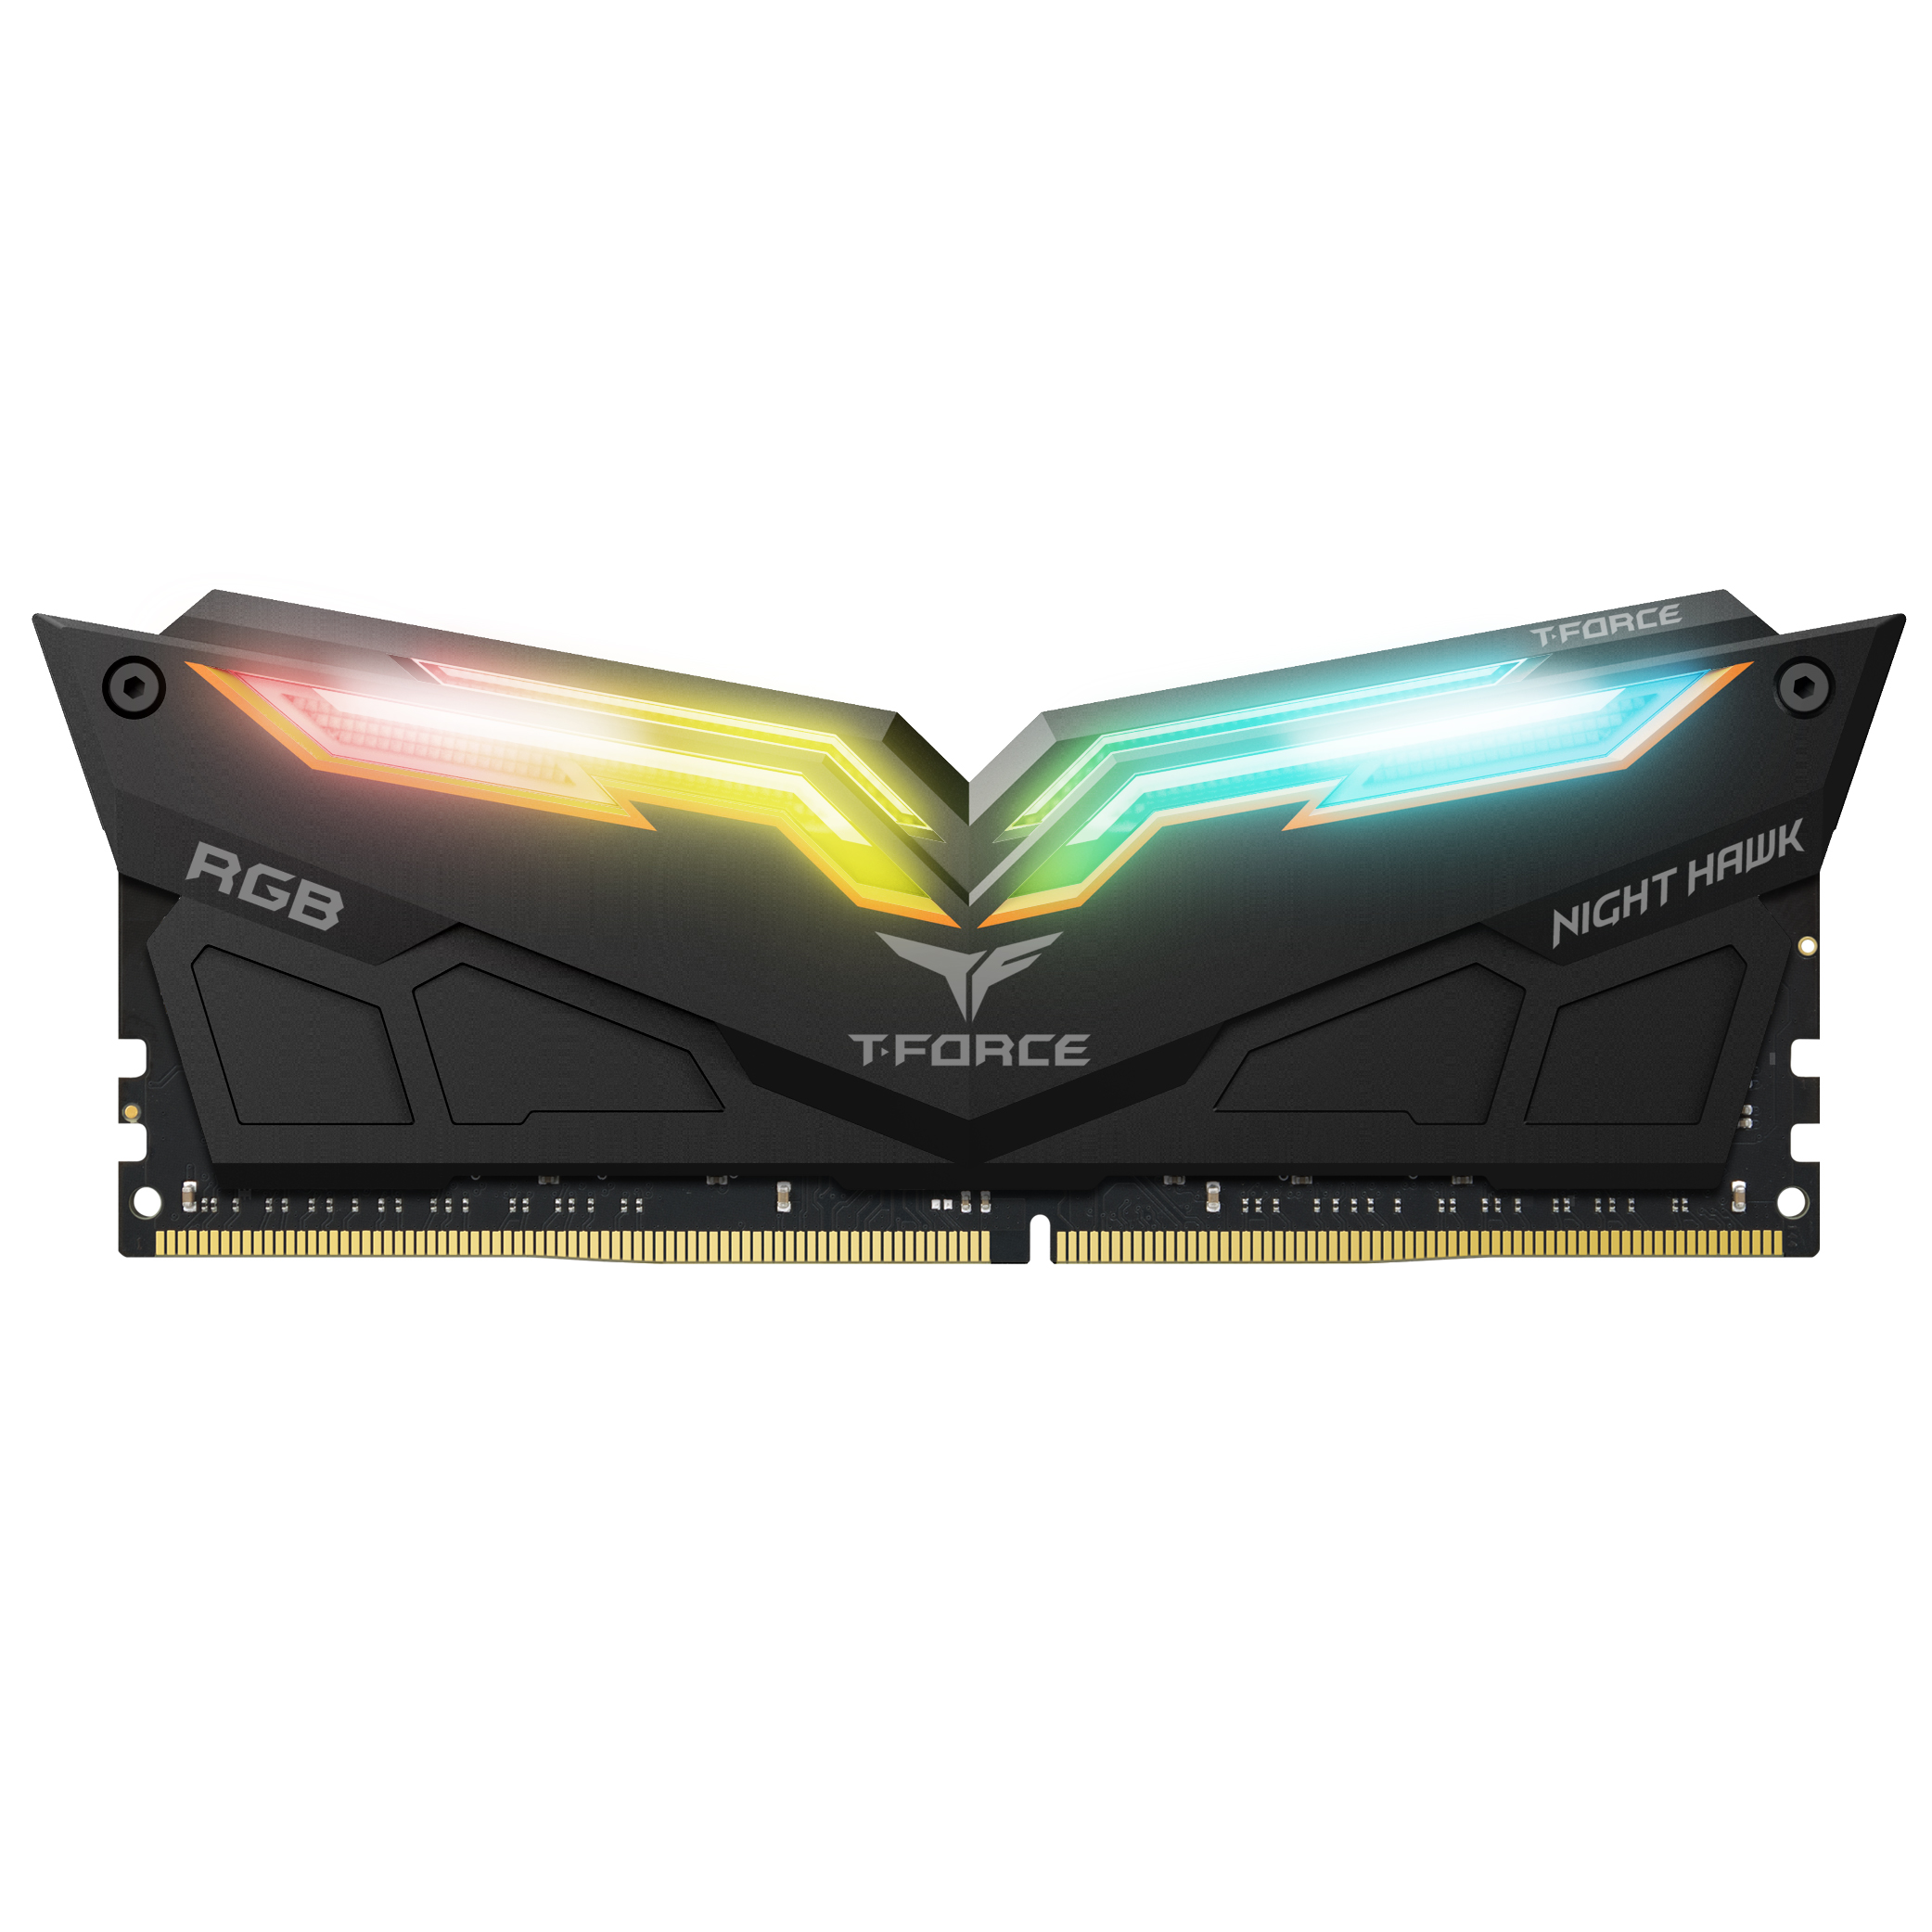 NIGHT HAWK RGB DDR4 3000桌上型記憶體